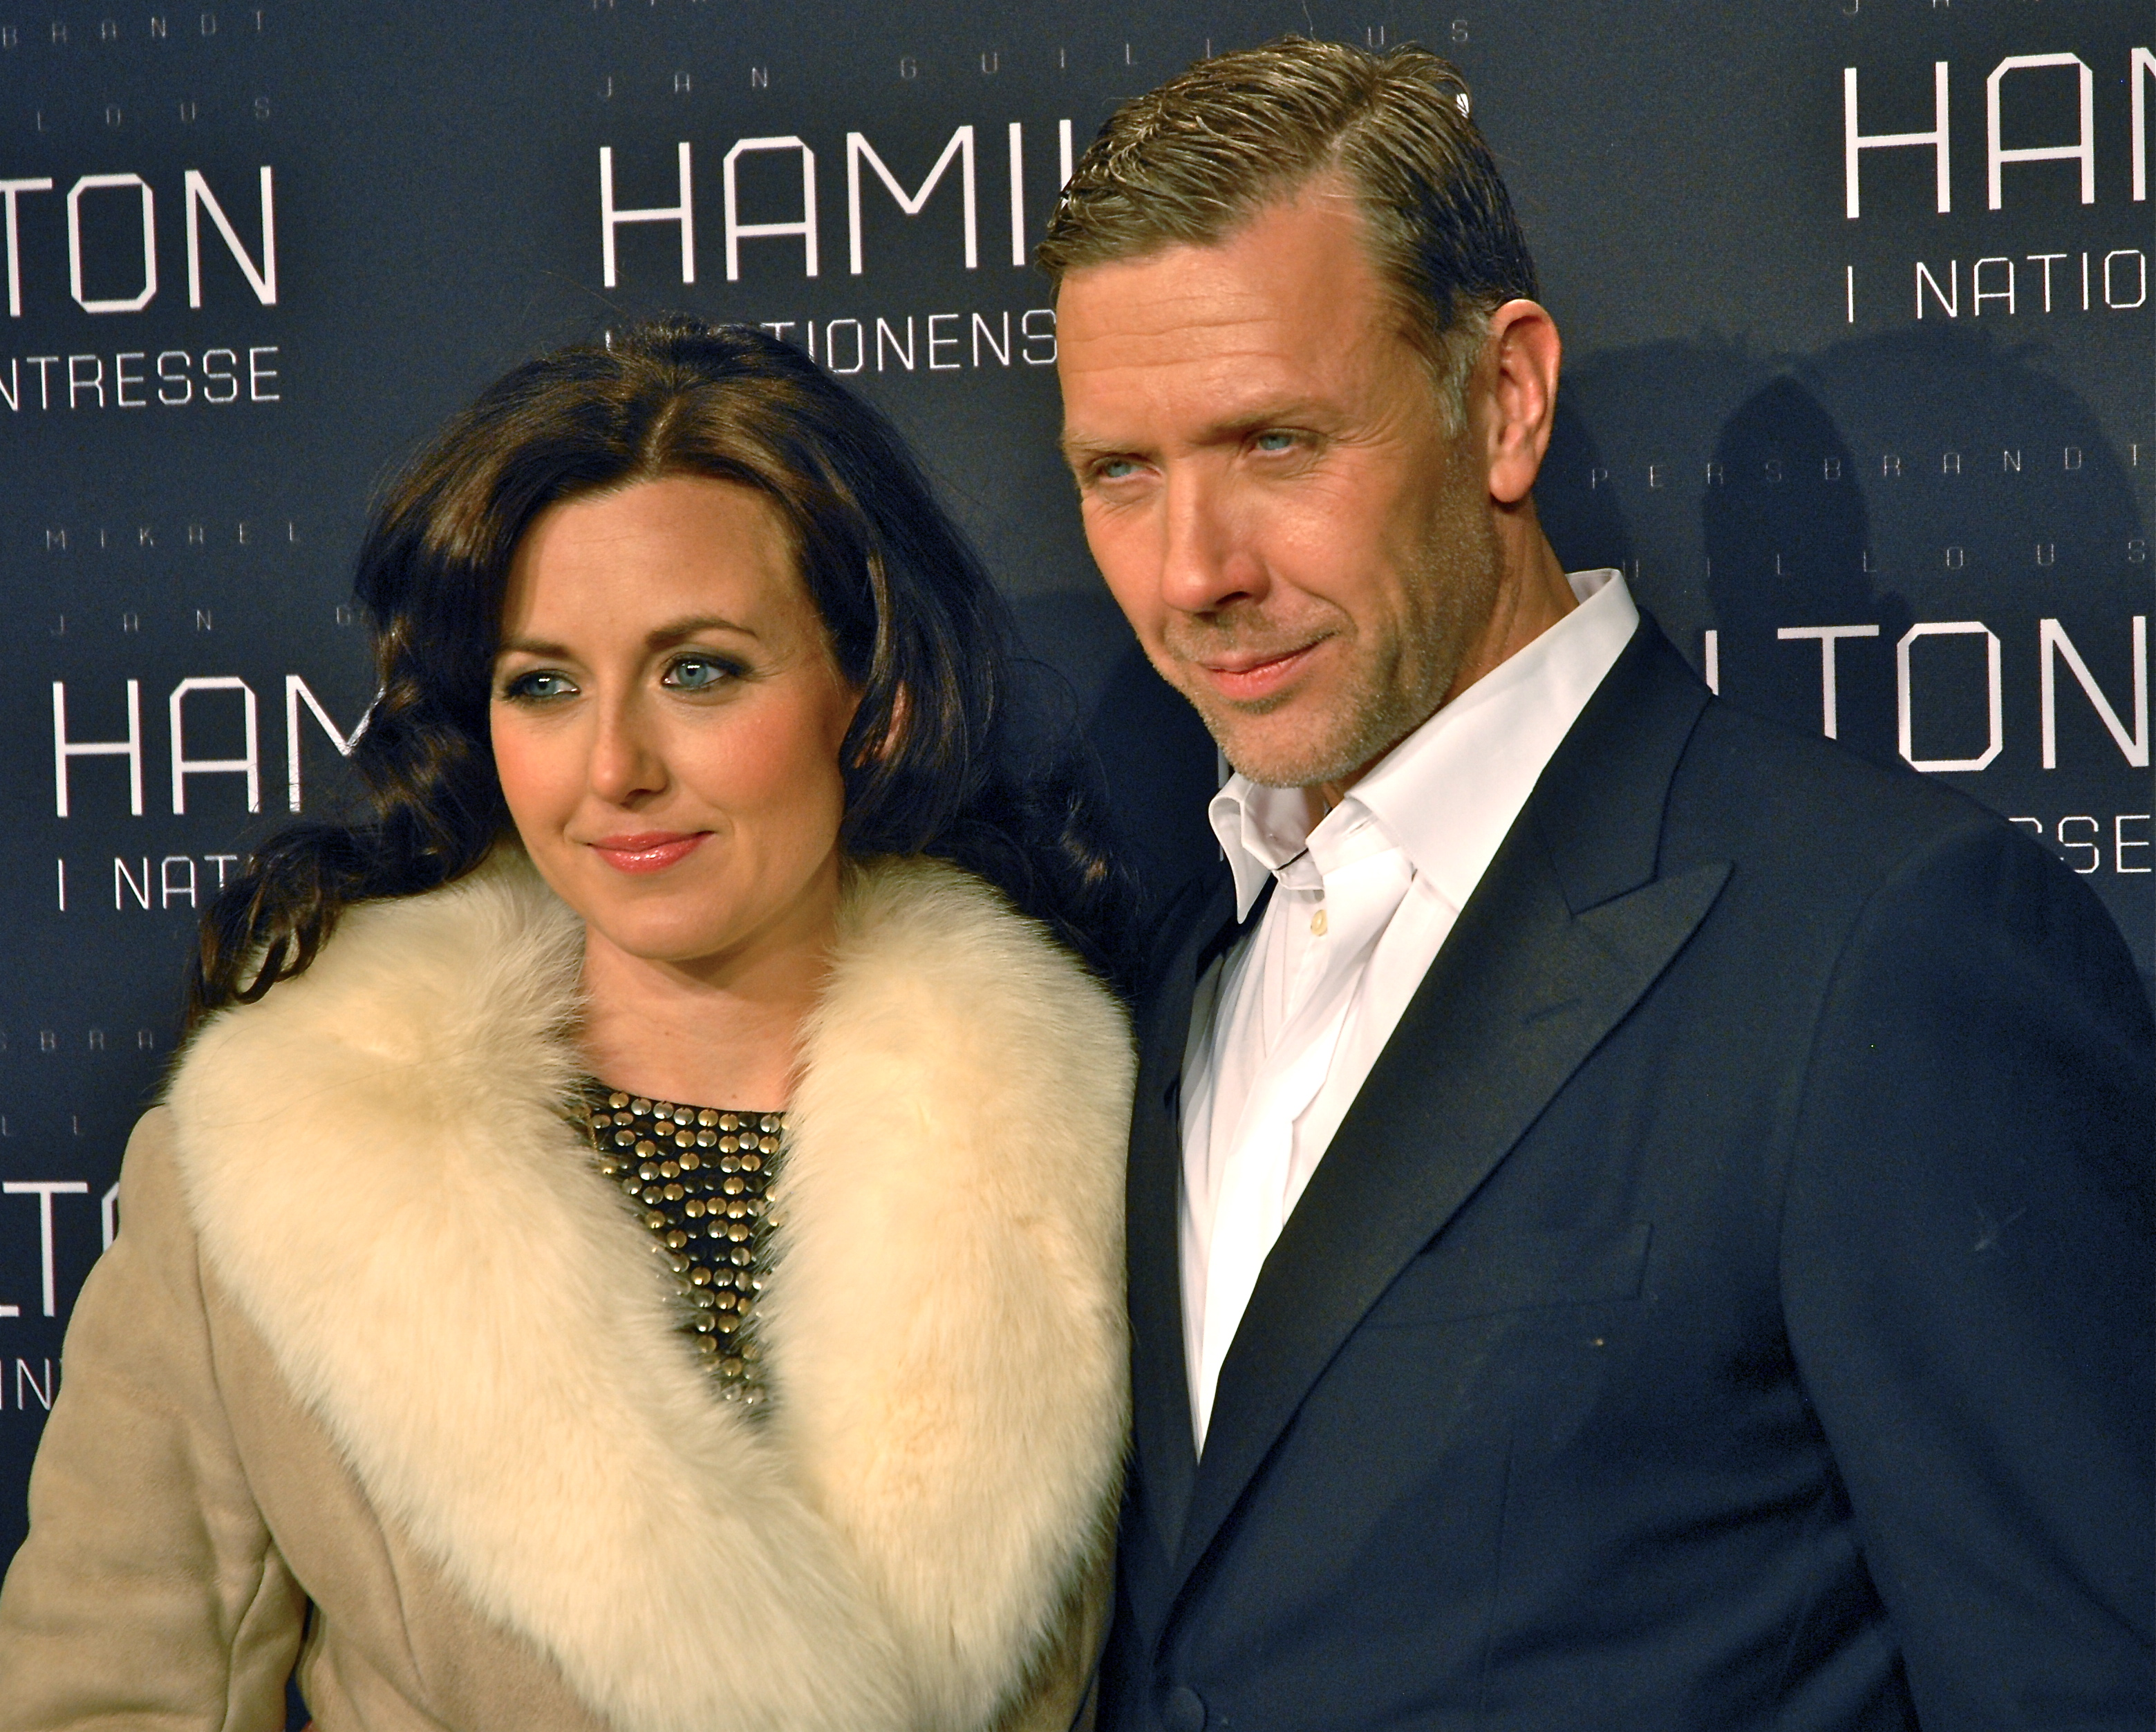 Mikael Persbrandt with gracious, Wife Sanna Lundell